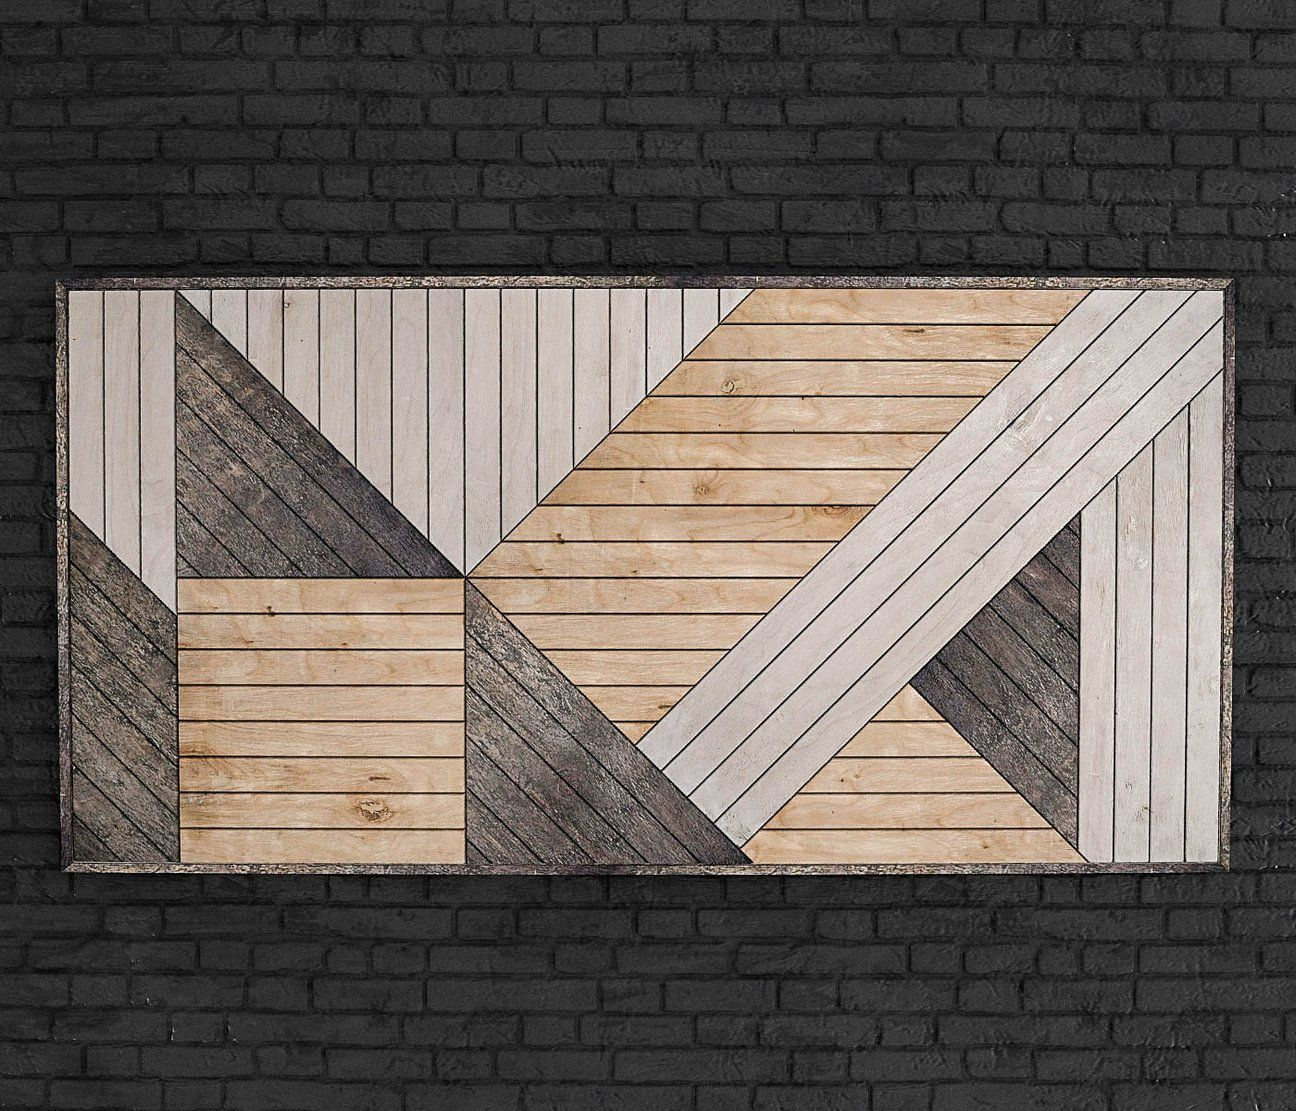 Modern Geometric Wood Wall Art Vertical Wood Wall Art Panel Rustic Wood Wall Art Wood Wall Art Wood Wall